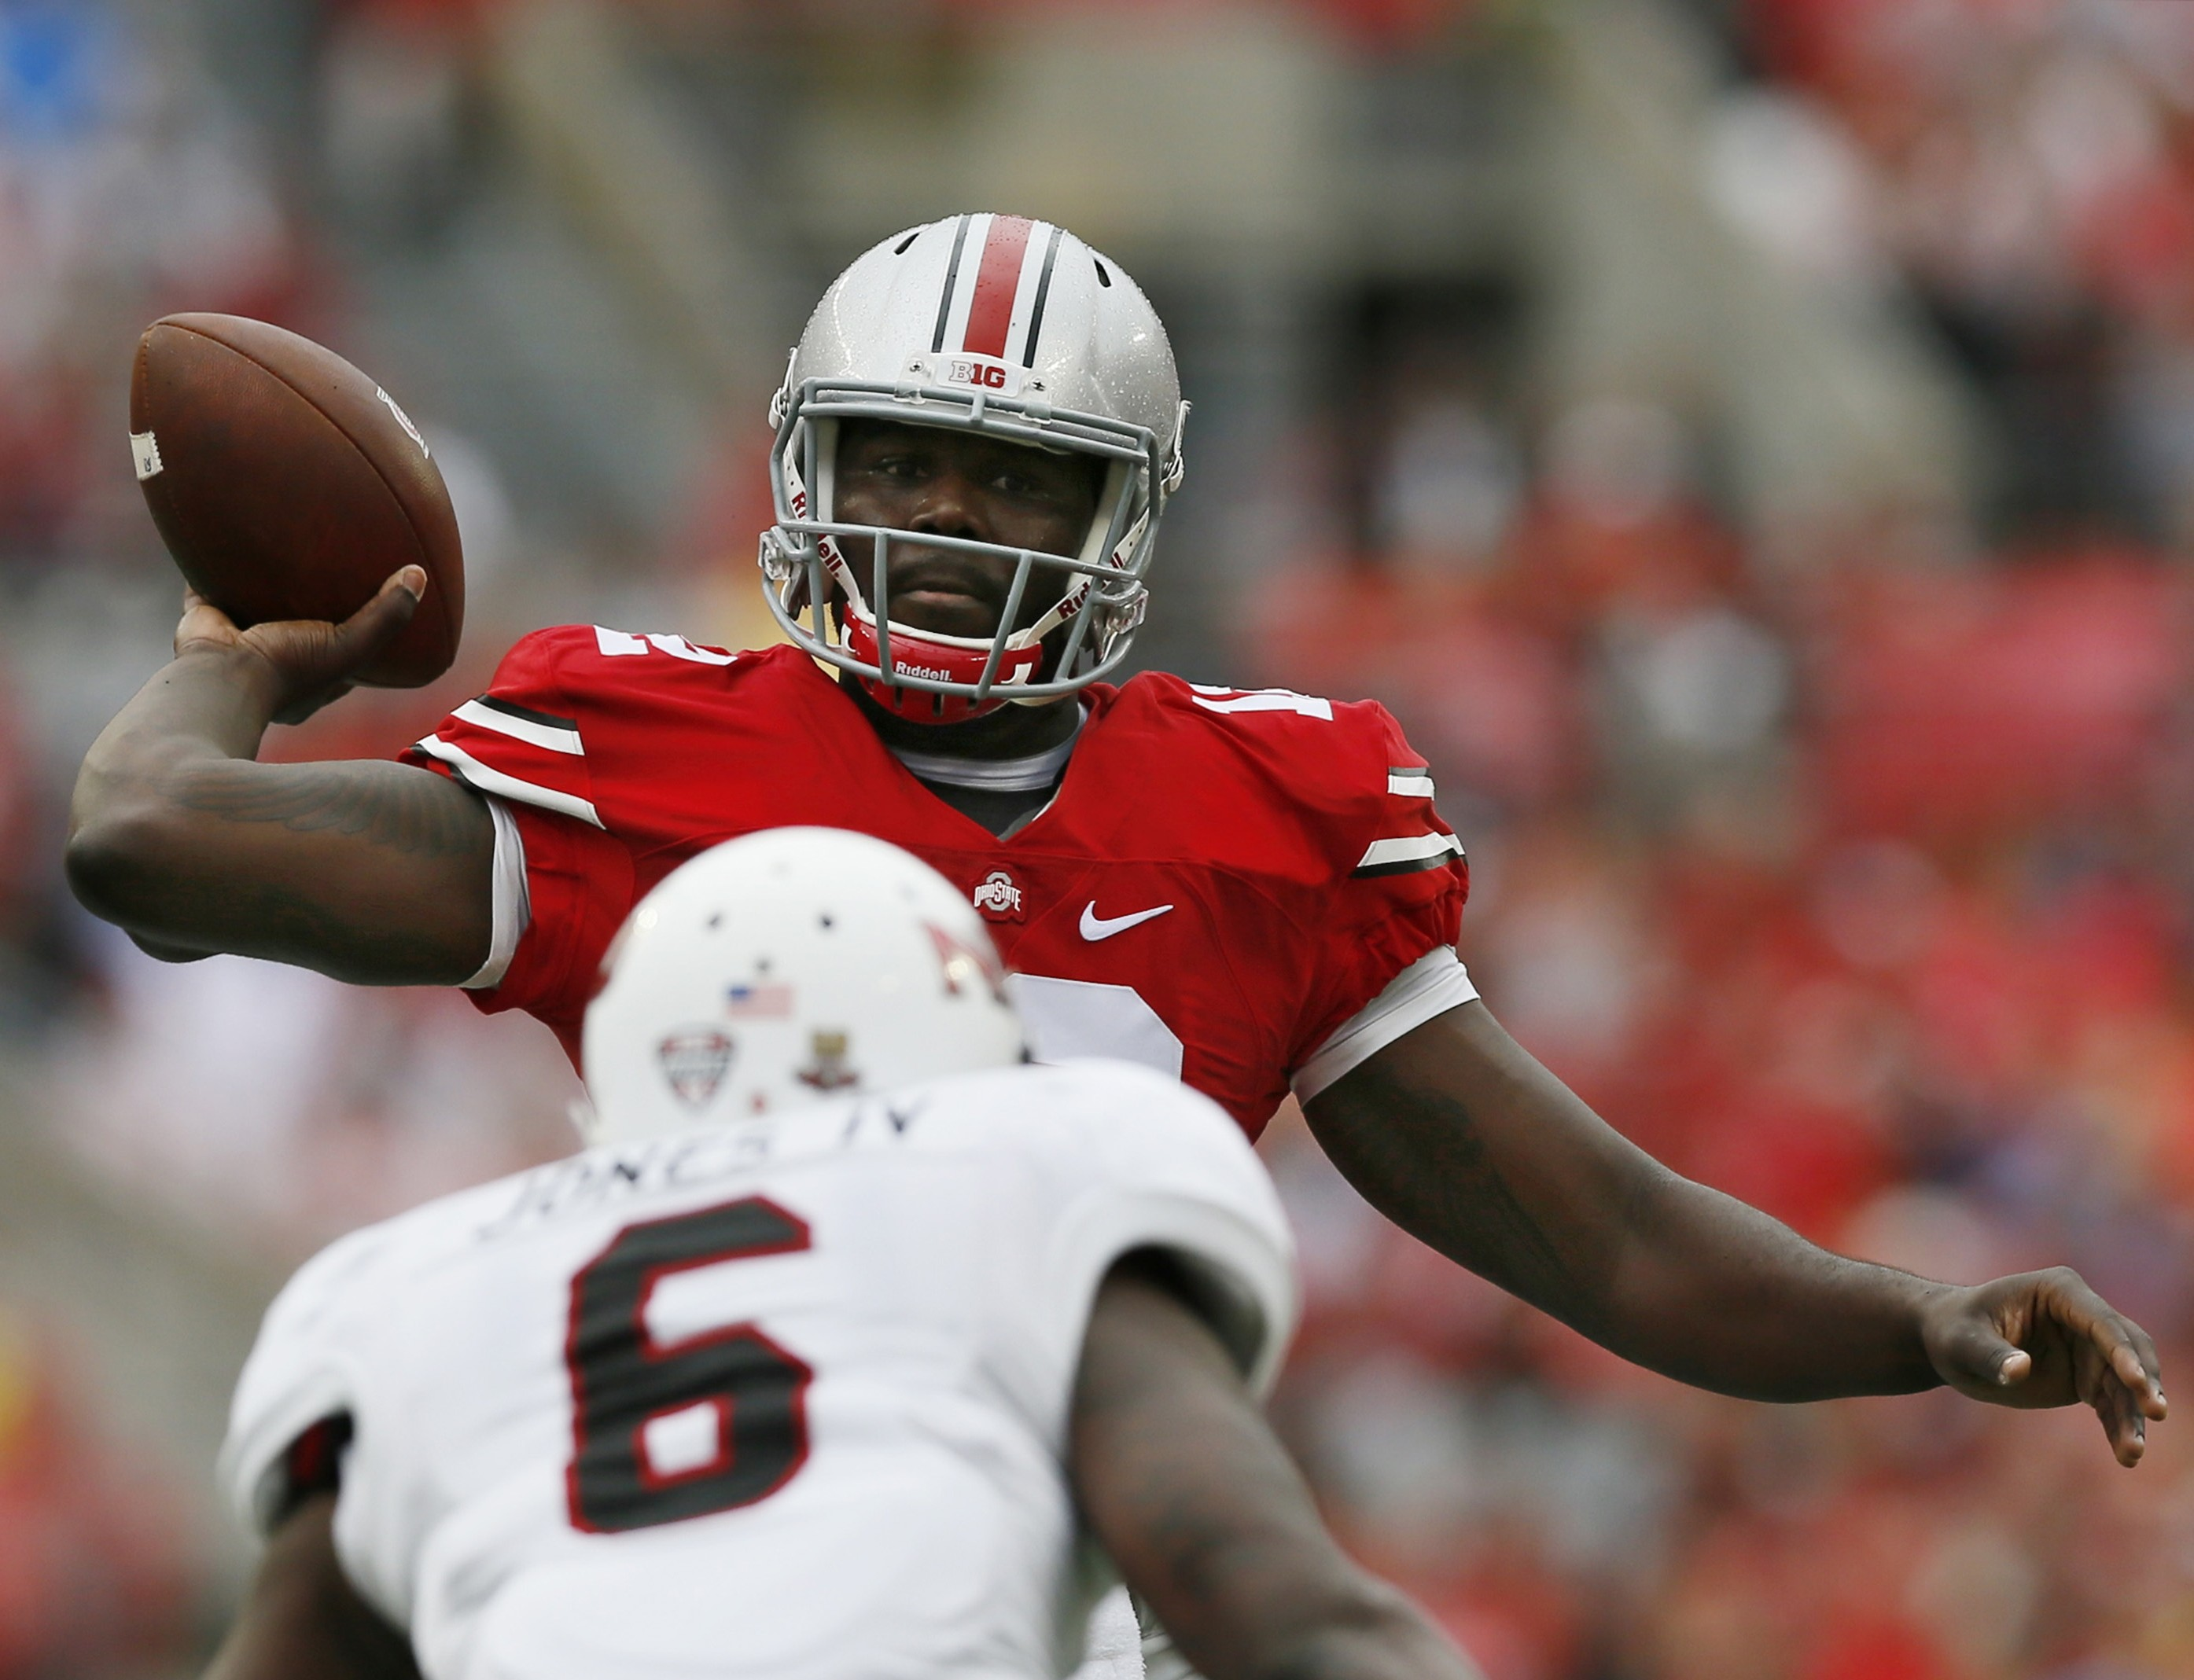 The Bills are intrigued by the skill set of former Ohio State quarterback Cardale Jones, who has a cannon arm but will need time to get his game NFL-ready.